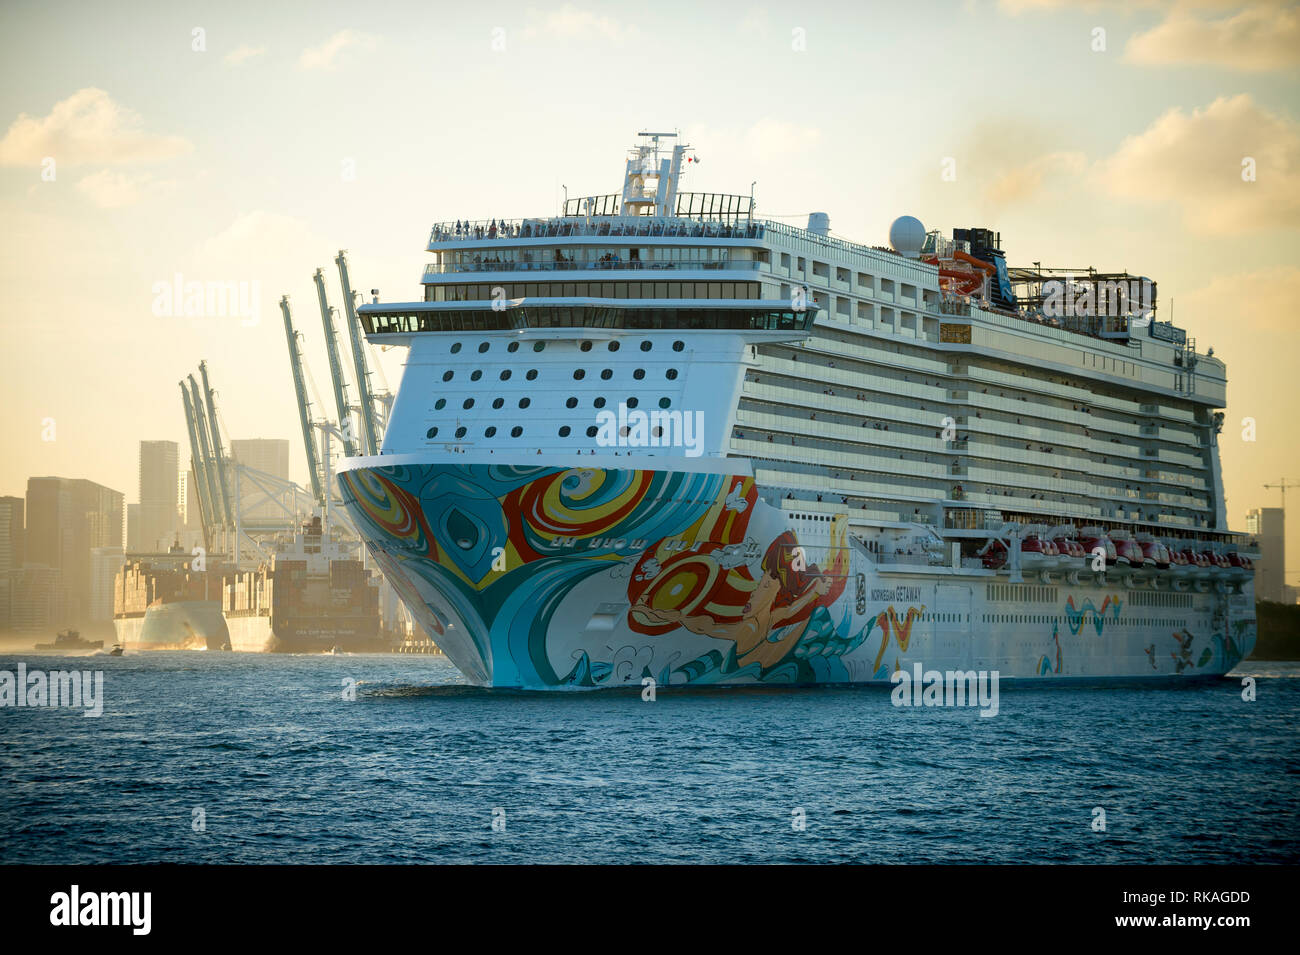 MIAMI - DECEMBER 25, 2018: The Norwegian Getaway cruise ship, which scores a C for air pollution reduction, departs PortMiami at sunset. - Stock Image